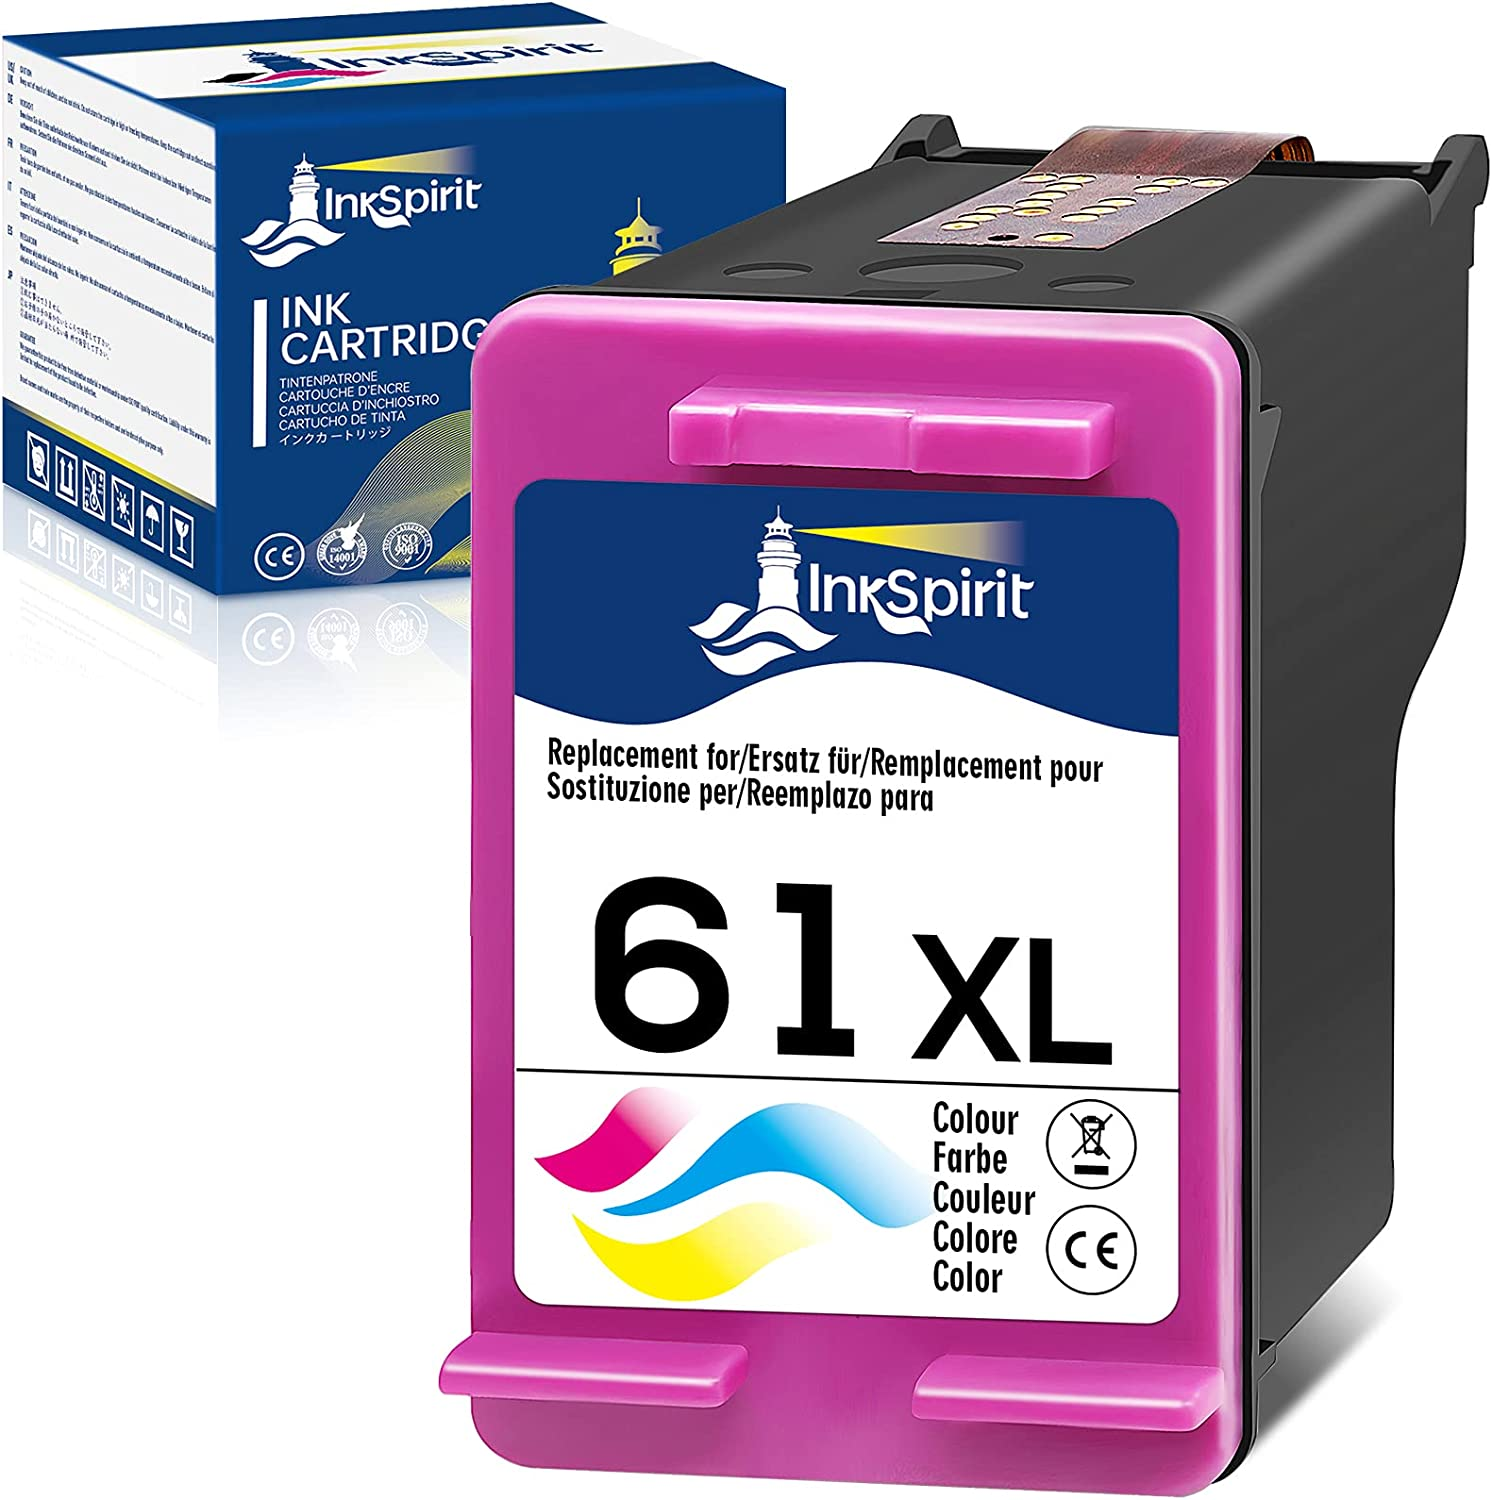 InkSpirit Remanufactured Ink Cartridge 61 Replacement for HP 61XL 61 XL Tri-Color Used in Envy 4500 4502 5530 OfficeJet 4630 DeskJet 2512 1512 2542 2540 2544 3000 3052a 1055 3051a 2548 (1-Pack)